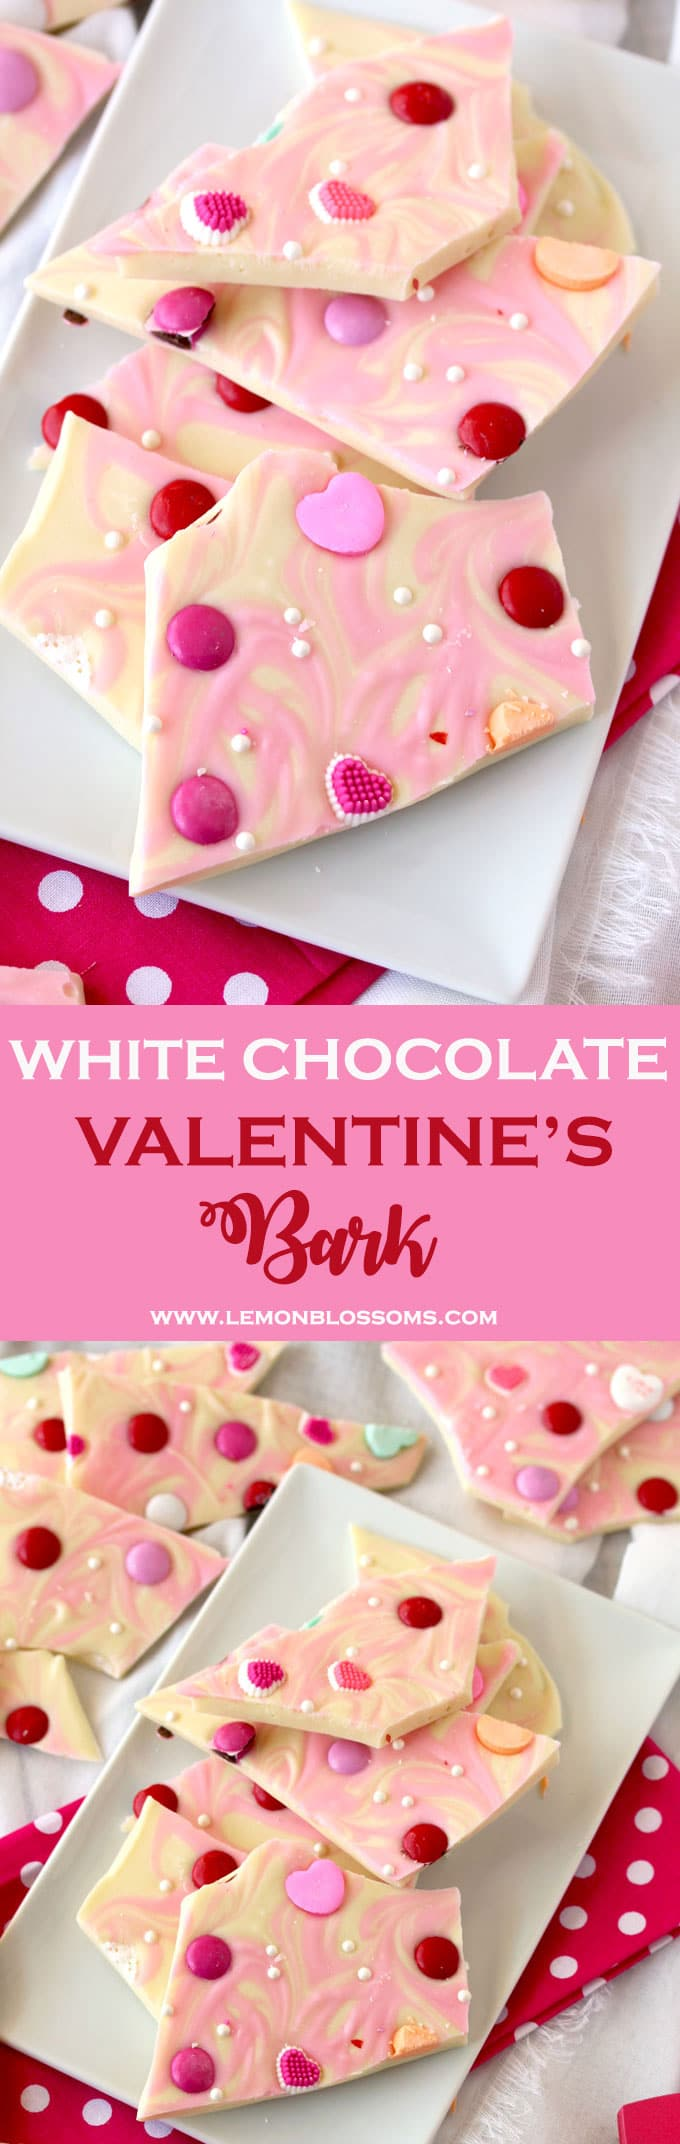 This Valentine's Bark is sweet, delicious and incredibly addicting. This no bake, stress-free and fun dessert is made with white chocolate, marbled with pink vanilla candy melts and decorated with assorted Valentine's theme candies. This is definitely the easiest homemade gift you can make! #Valentinesday #Bark #chocolate #gifts #homemade #whitechocolate